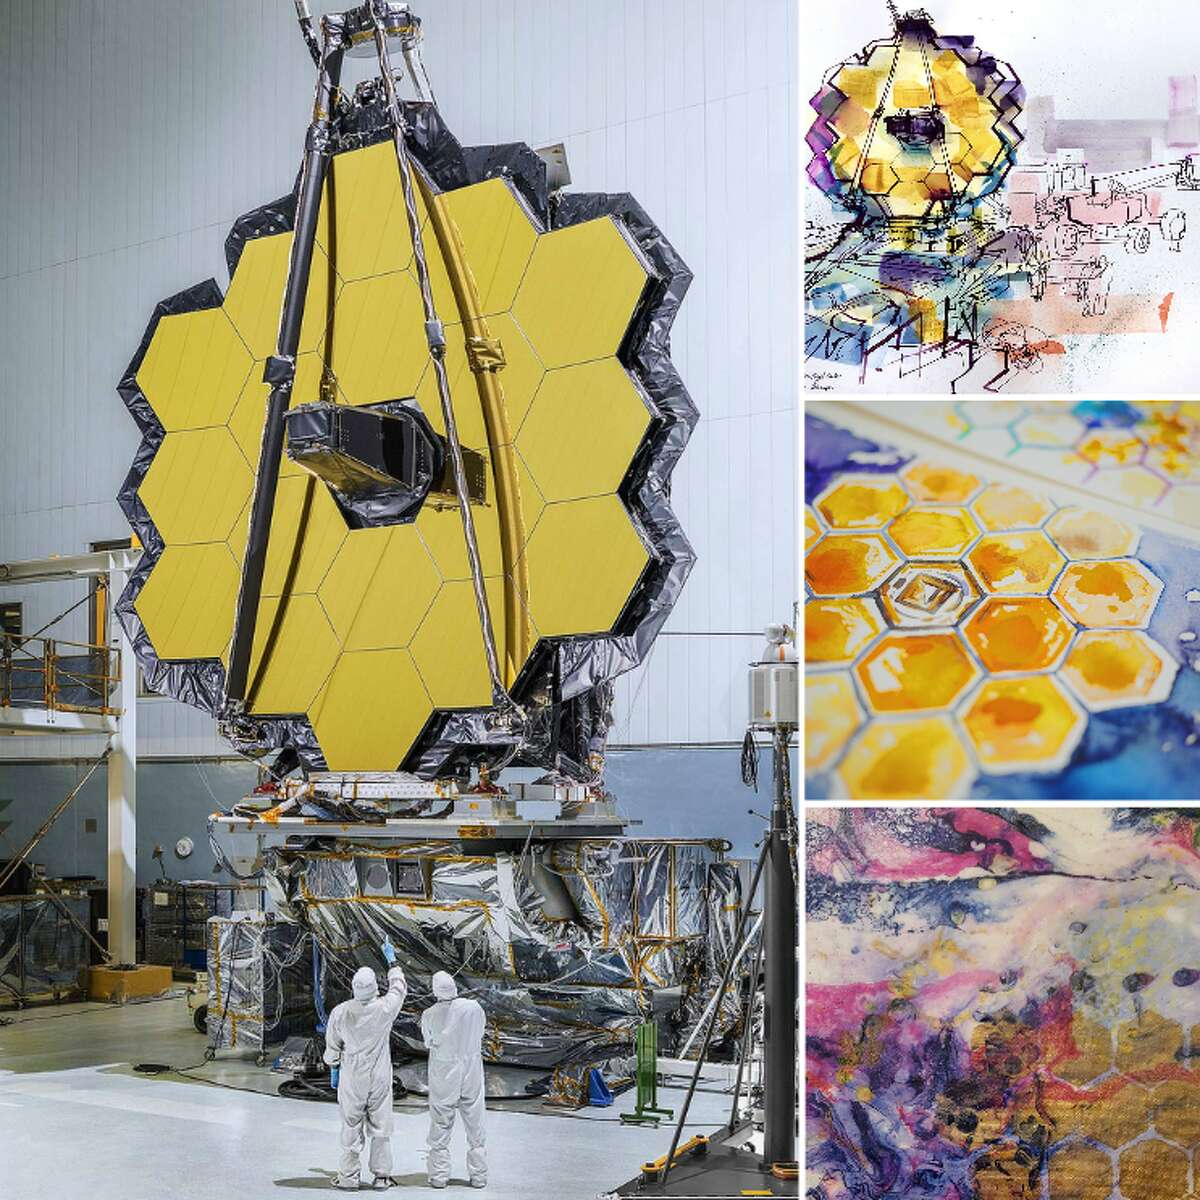 NASA recently invited artists to be inspired by their James Webb Telescope. Click through to see some of their creations.